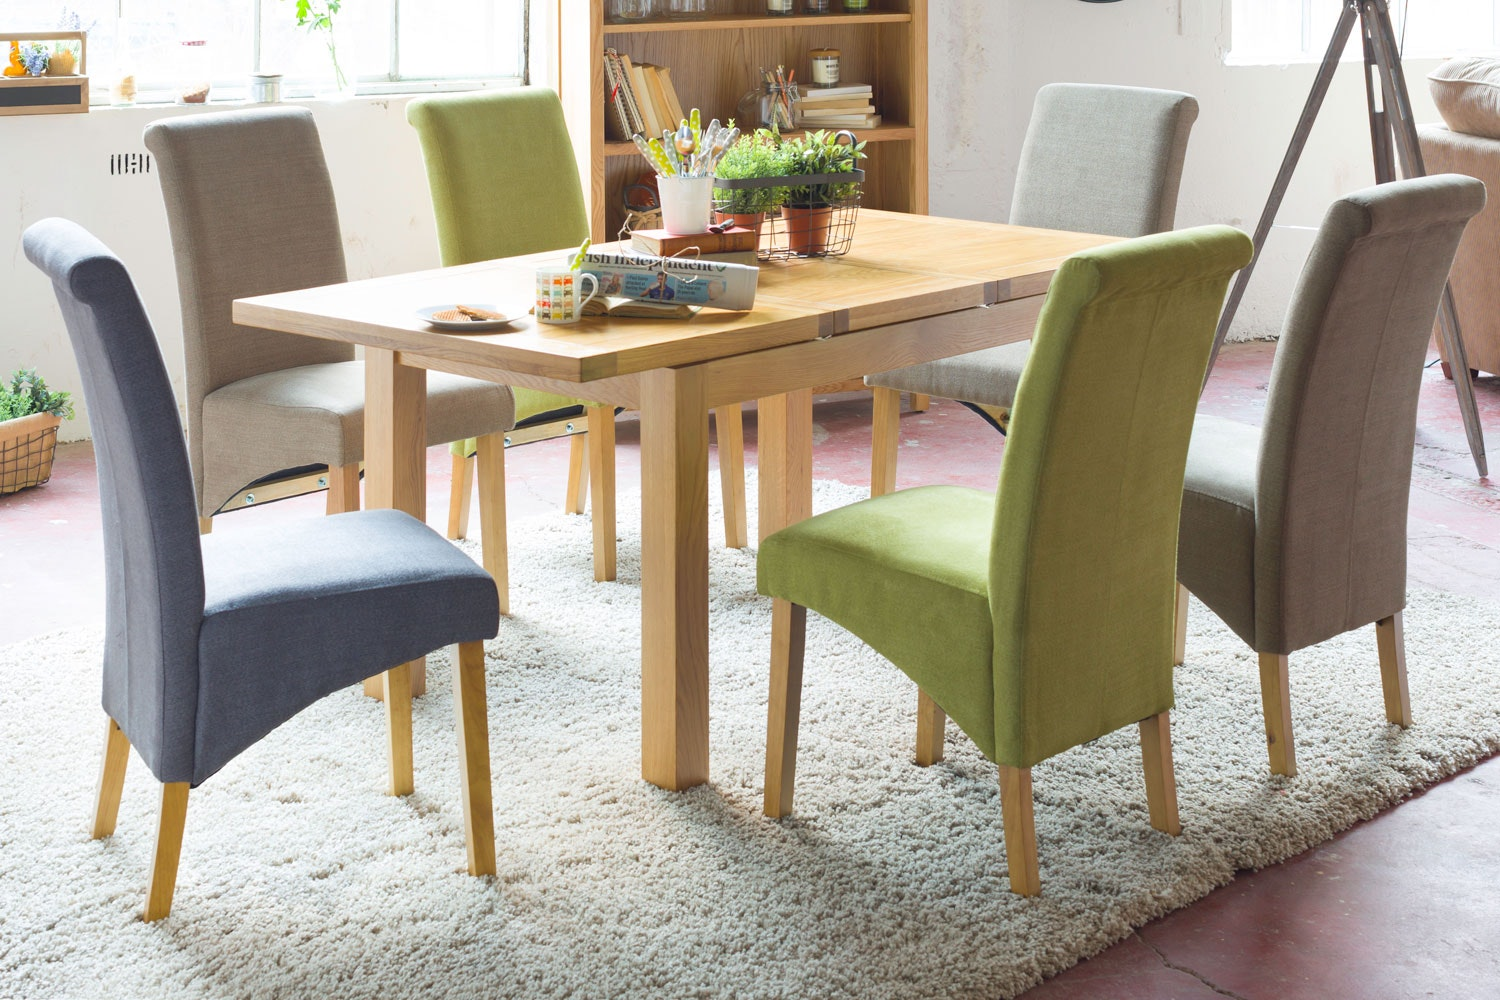 Harvey Norman Dining Table Chairs Image collections  : Crean Dining Set from sorahana.info size 1500 x 1000 jpeg 200kB